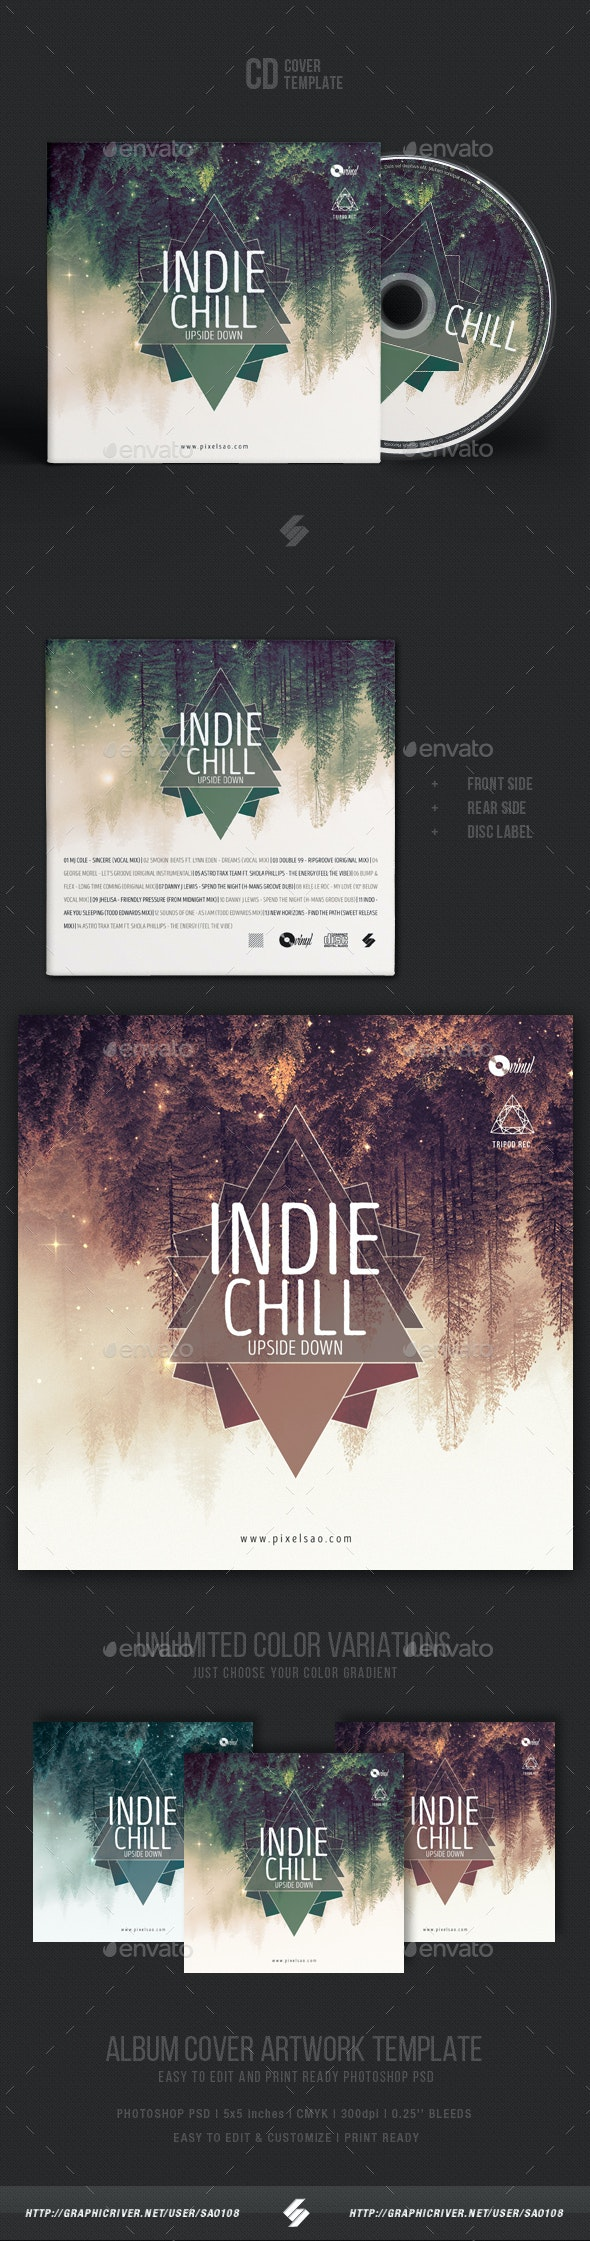 Indie Chill Music - CD Cover Artwork Template - CD & DVD Artwork Print Templates